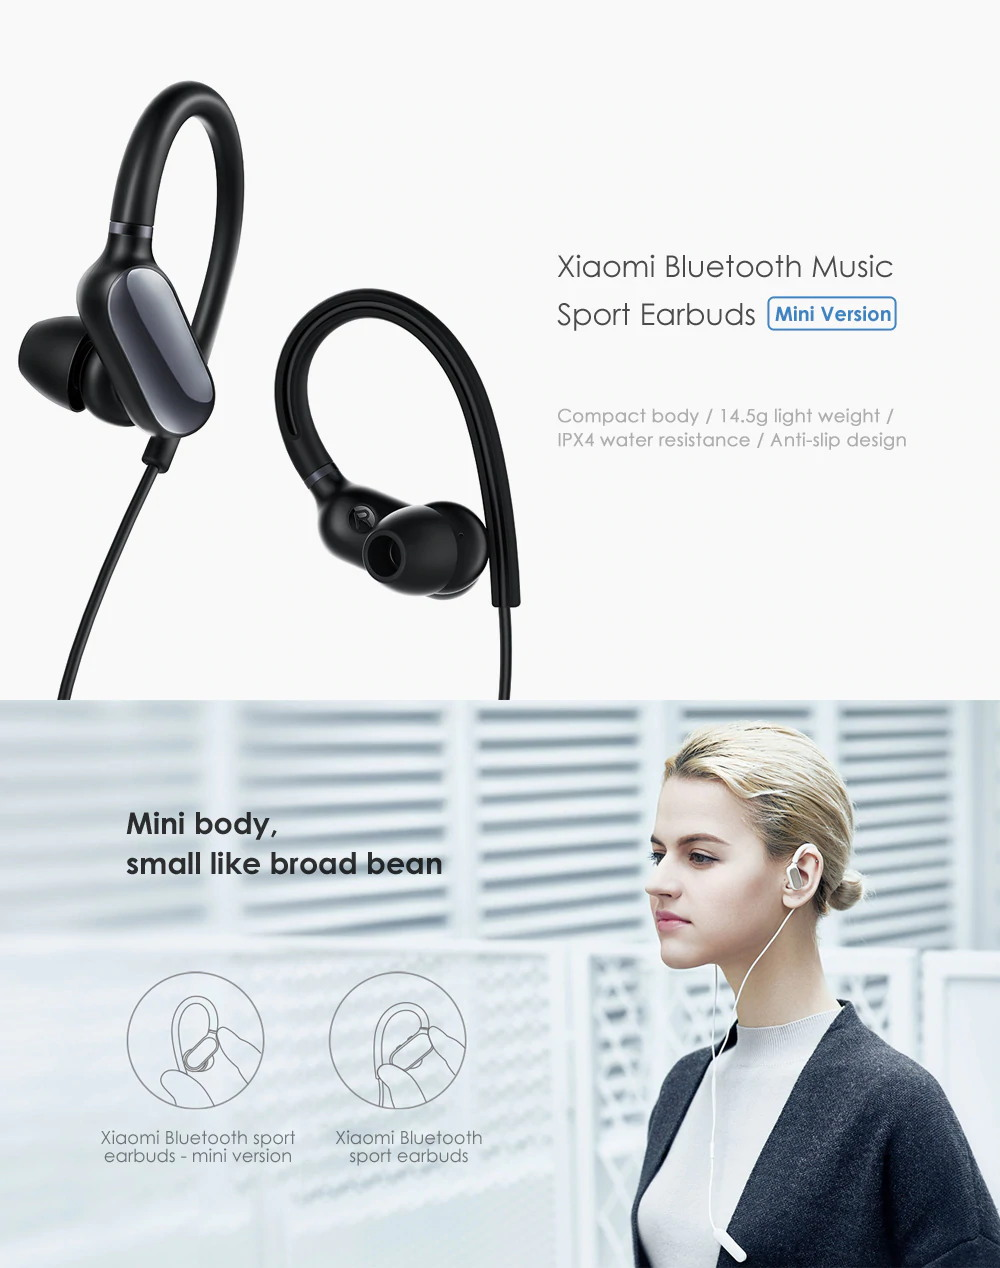 Xiaomi Bluetooth Sport Earbuds Mini Version.jpg